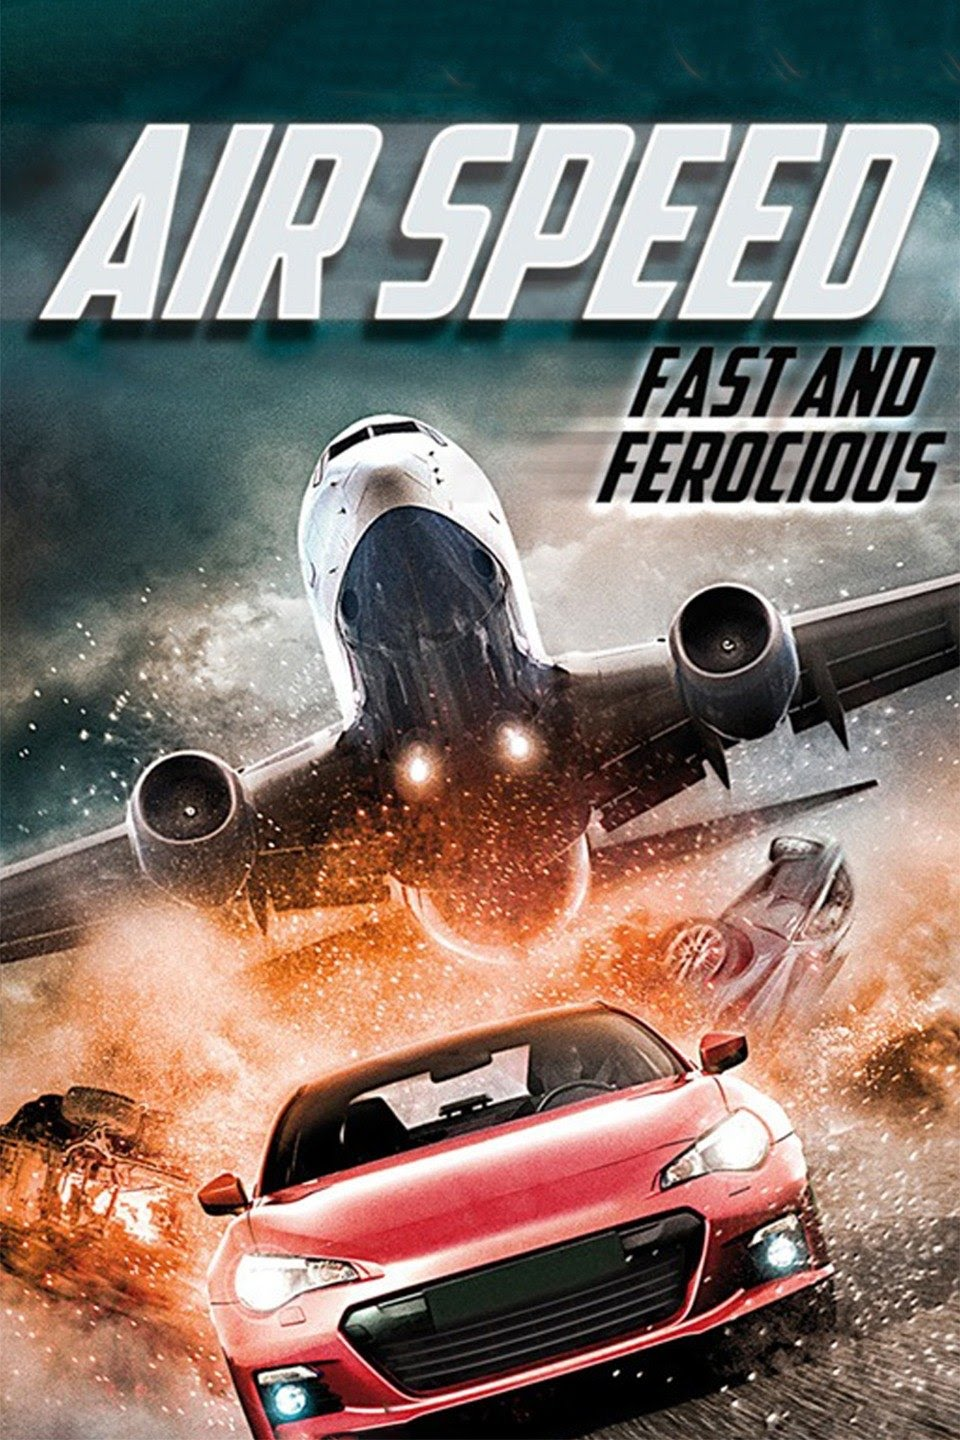 Download The Fast and the Fierce (2017) Full Movie In Hindi-English (Dual Audio) Bluray 480p [300MB]   720p [900MB]